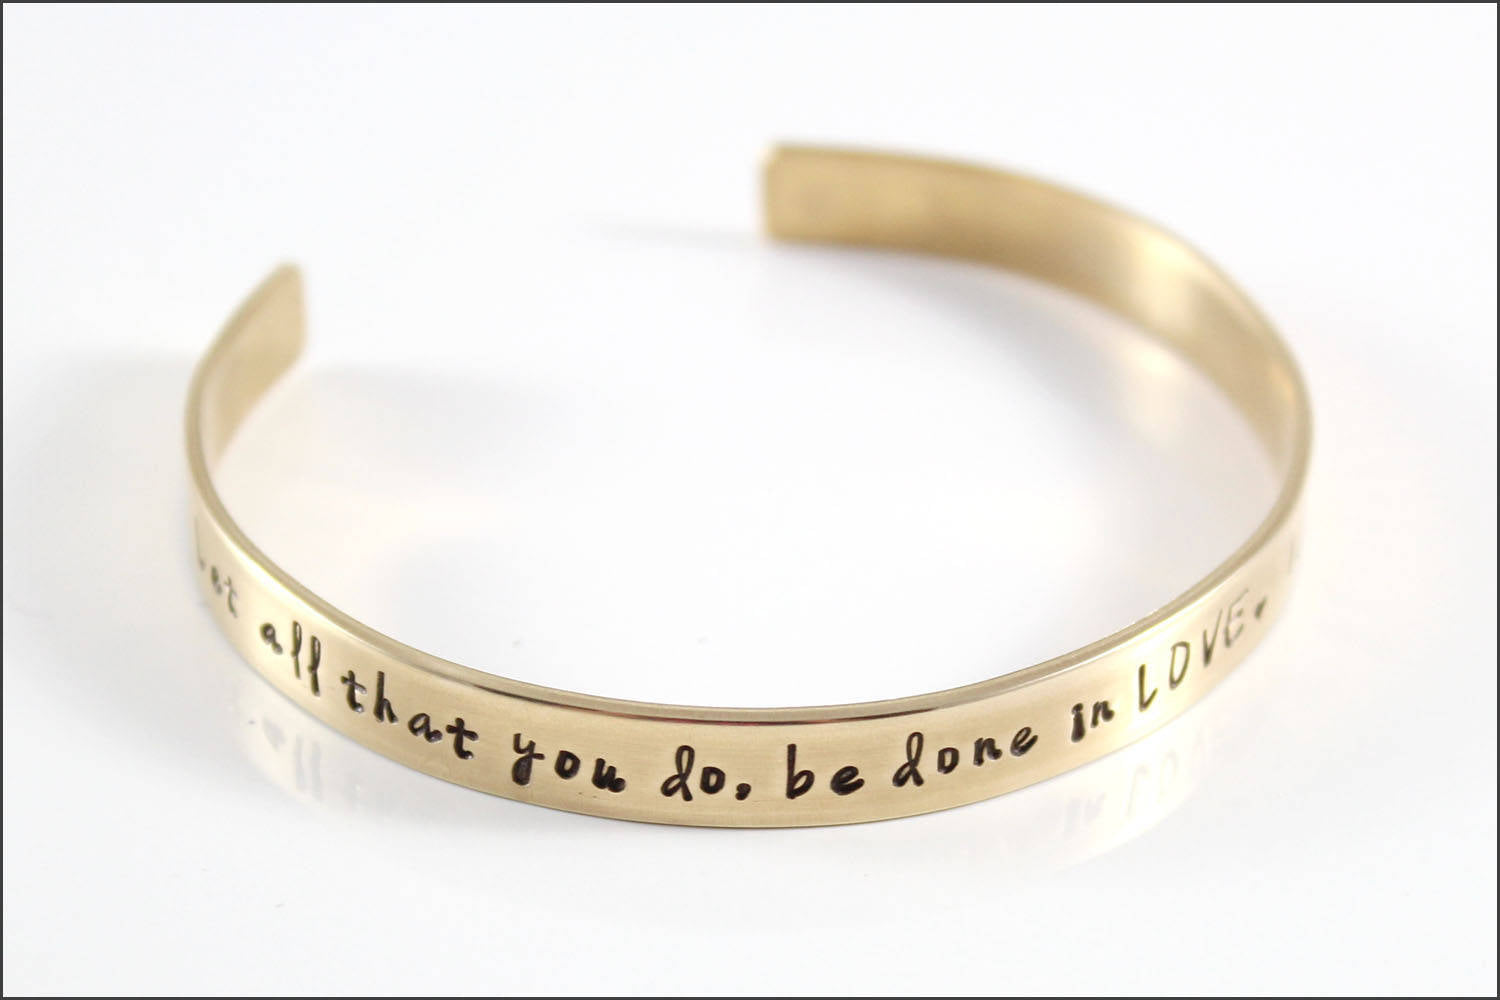 Personalized Gold Cuff Bracelet | Custom Message Jewelry, Nu Gold Cuff Bracelet, Small Gifts for Her, Custom Metal Bracelet